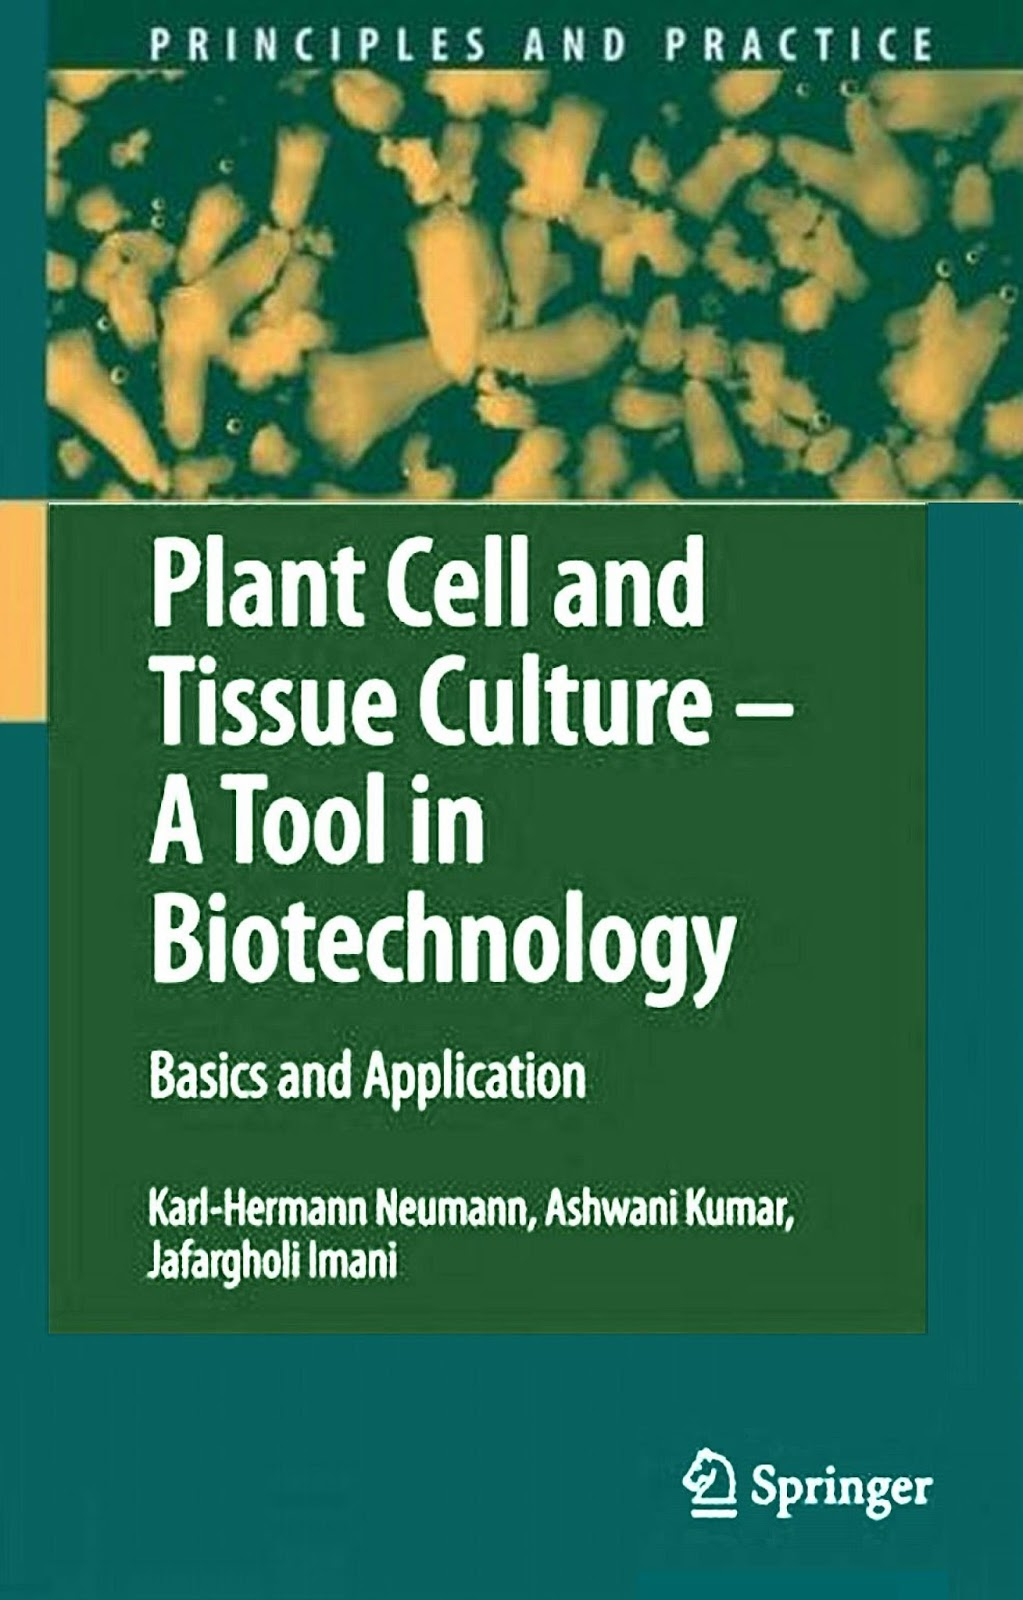 Karl Hermann Neumann 2009 Plant Cell And Tissue Culture A Tool In